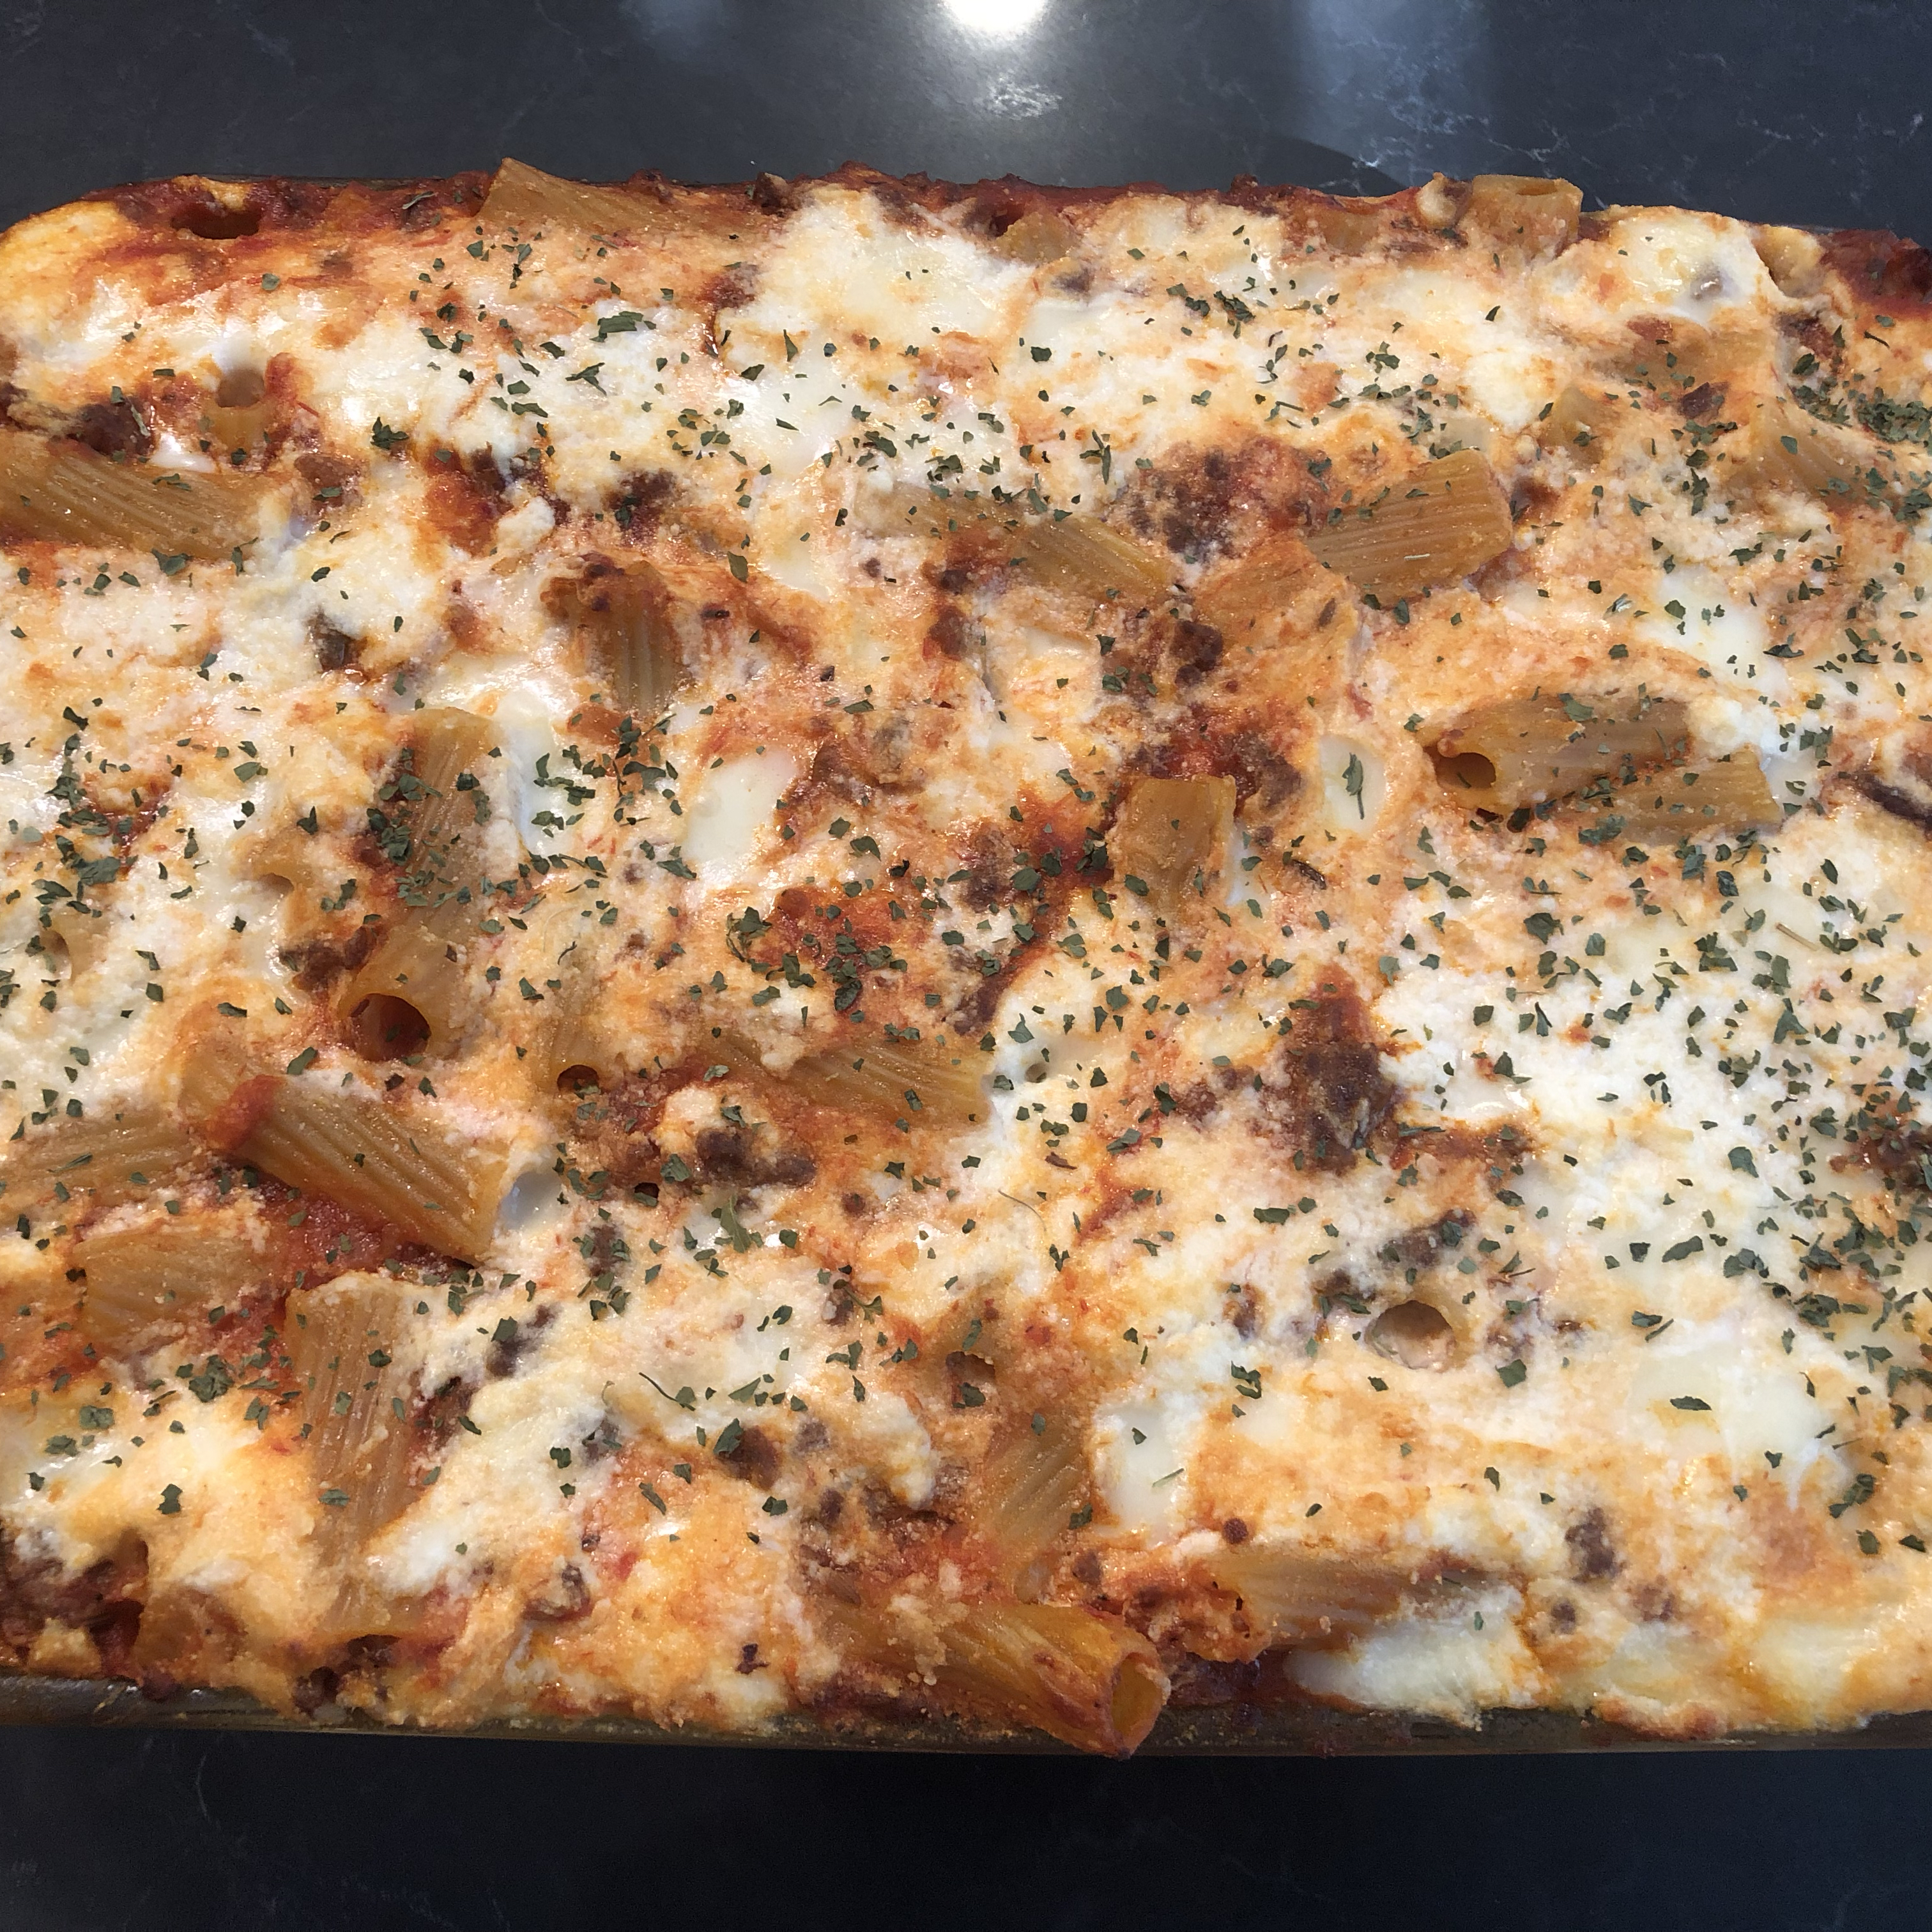 The Best Baked Ziti Drooms